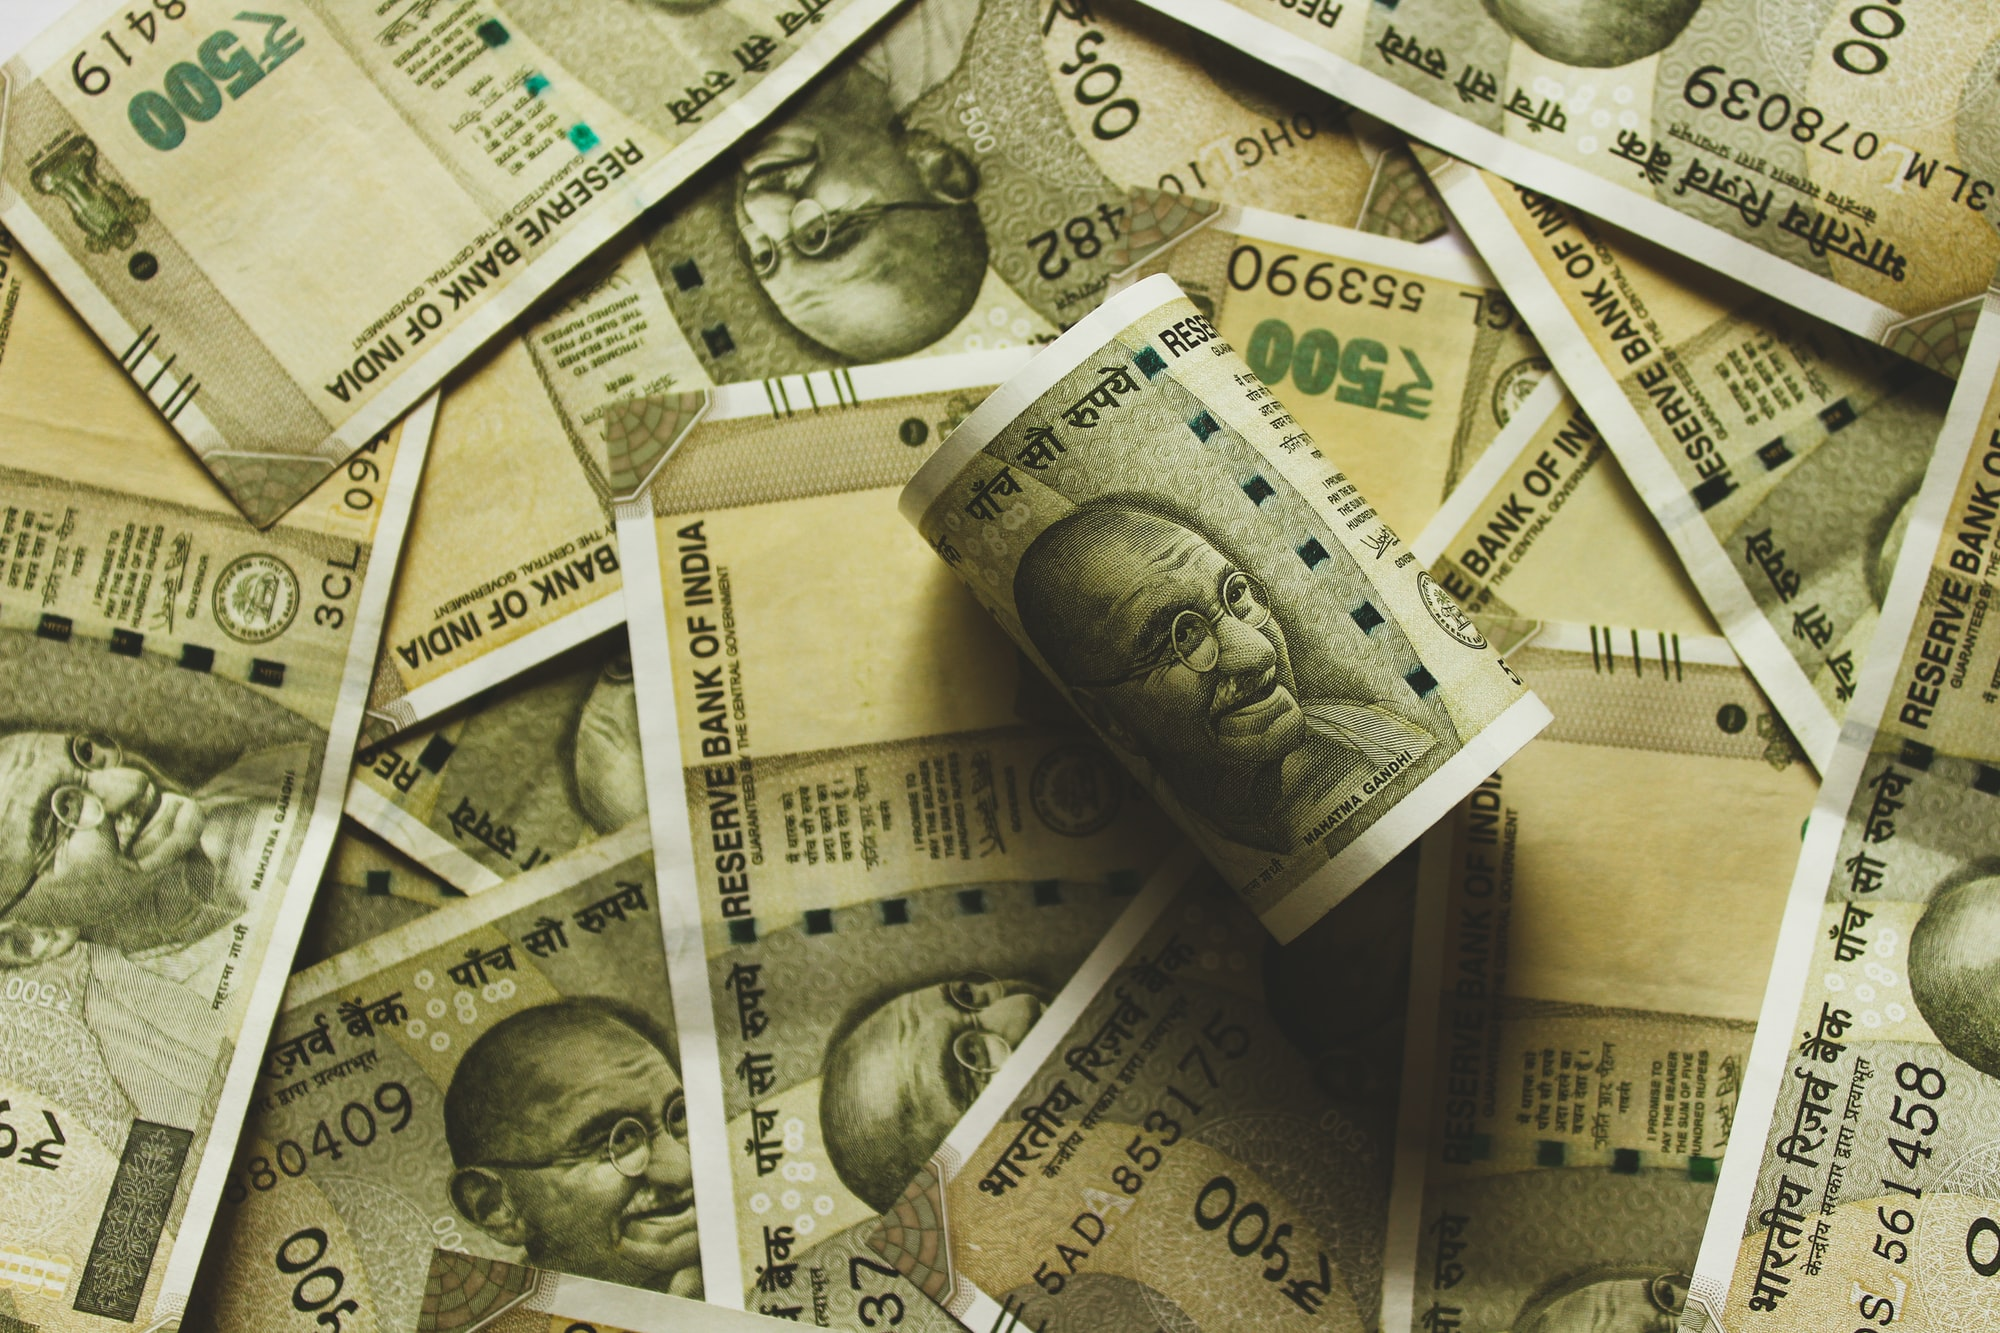 The value of the Indian rupee is raised to 50 paise per US dollar.